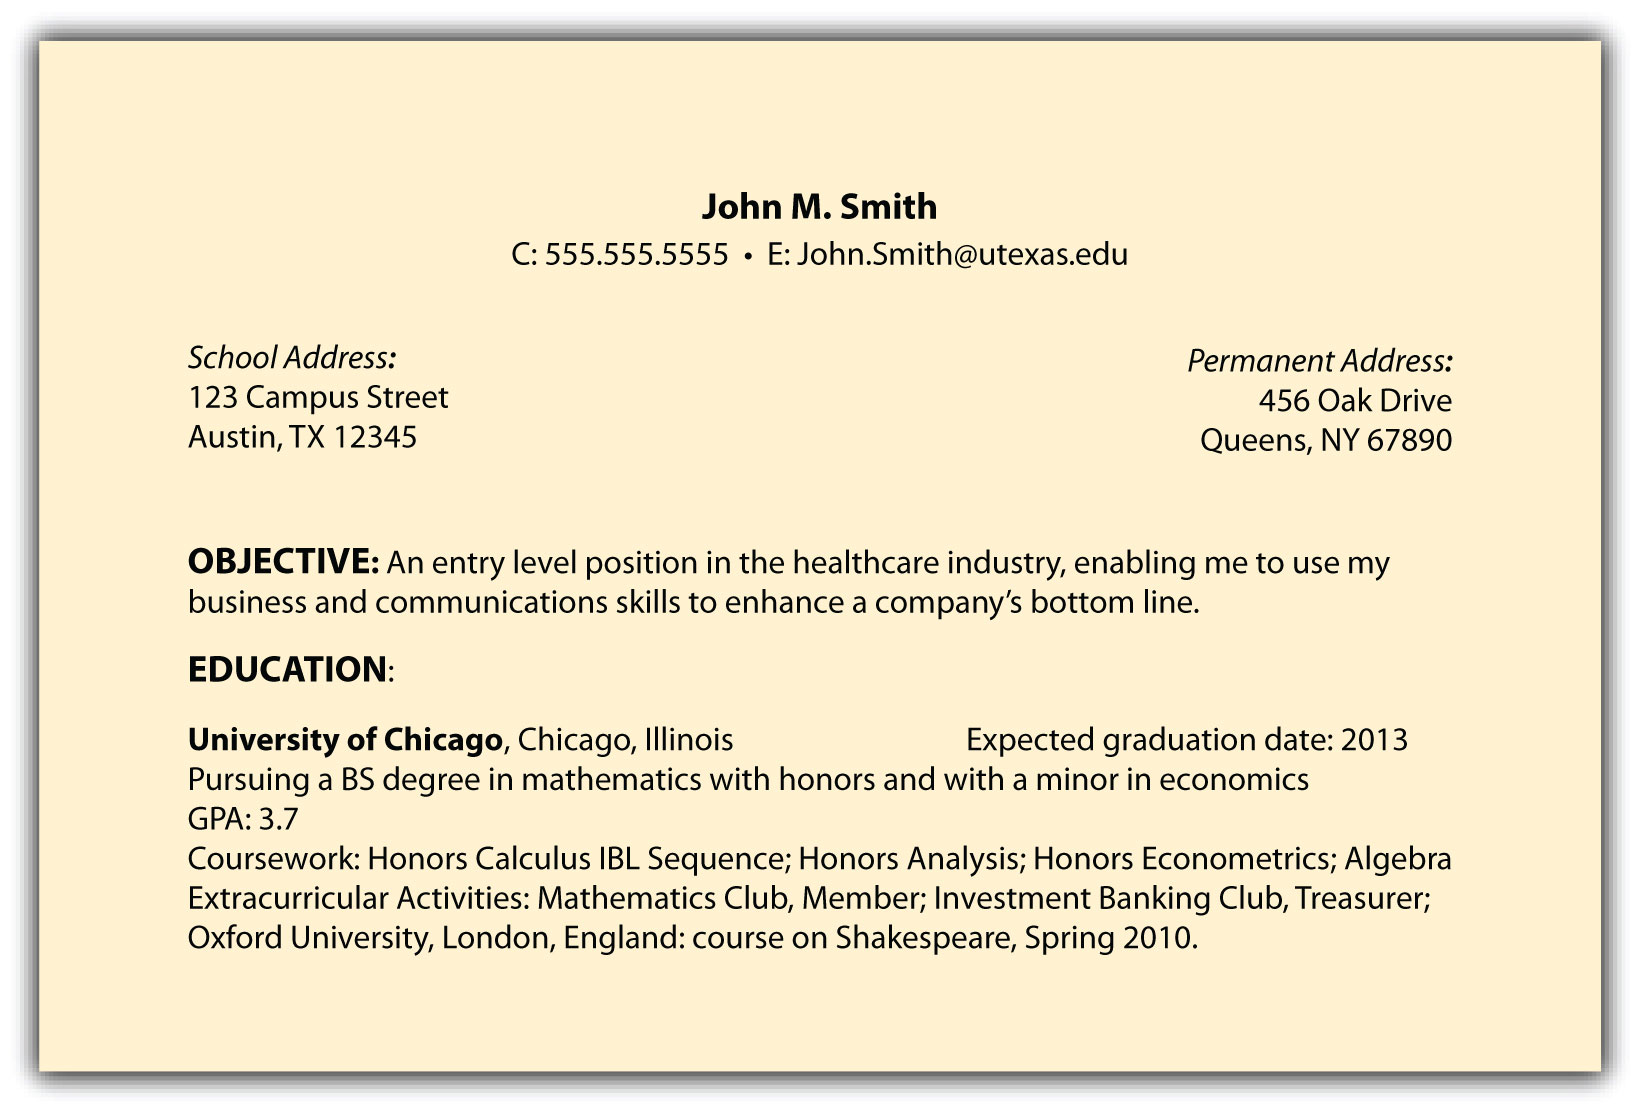 Sample Resume Objective Information Technology